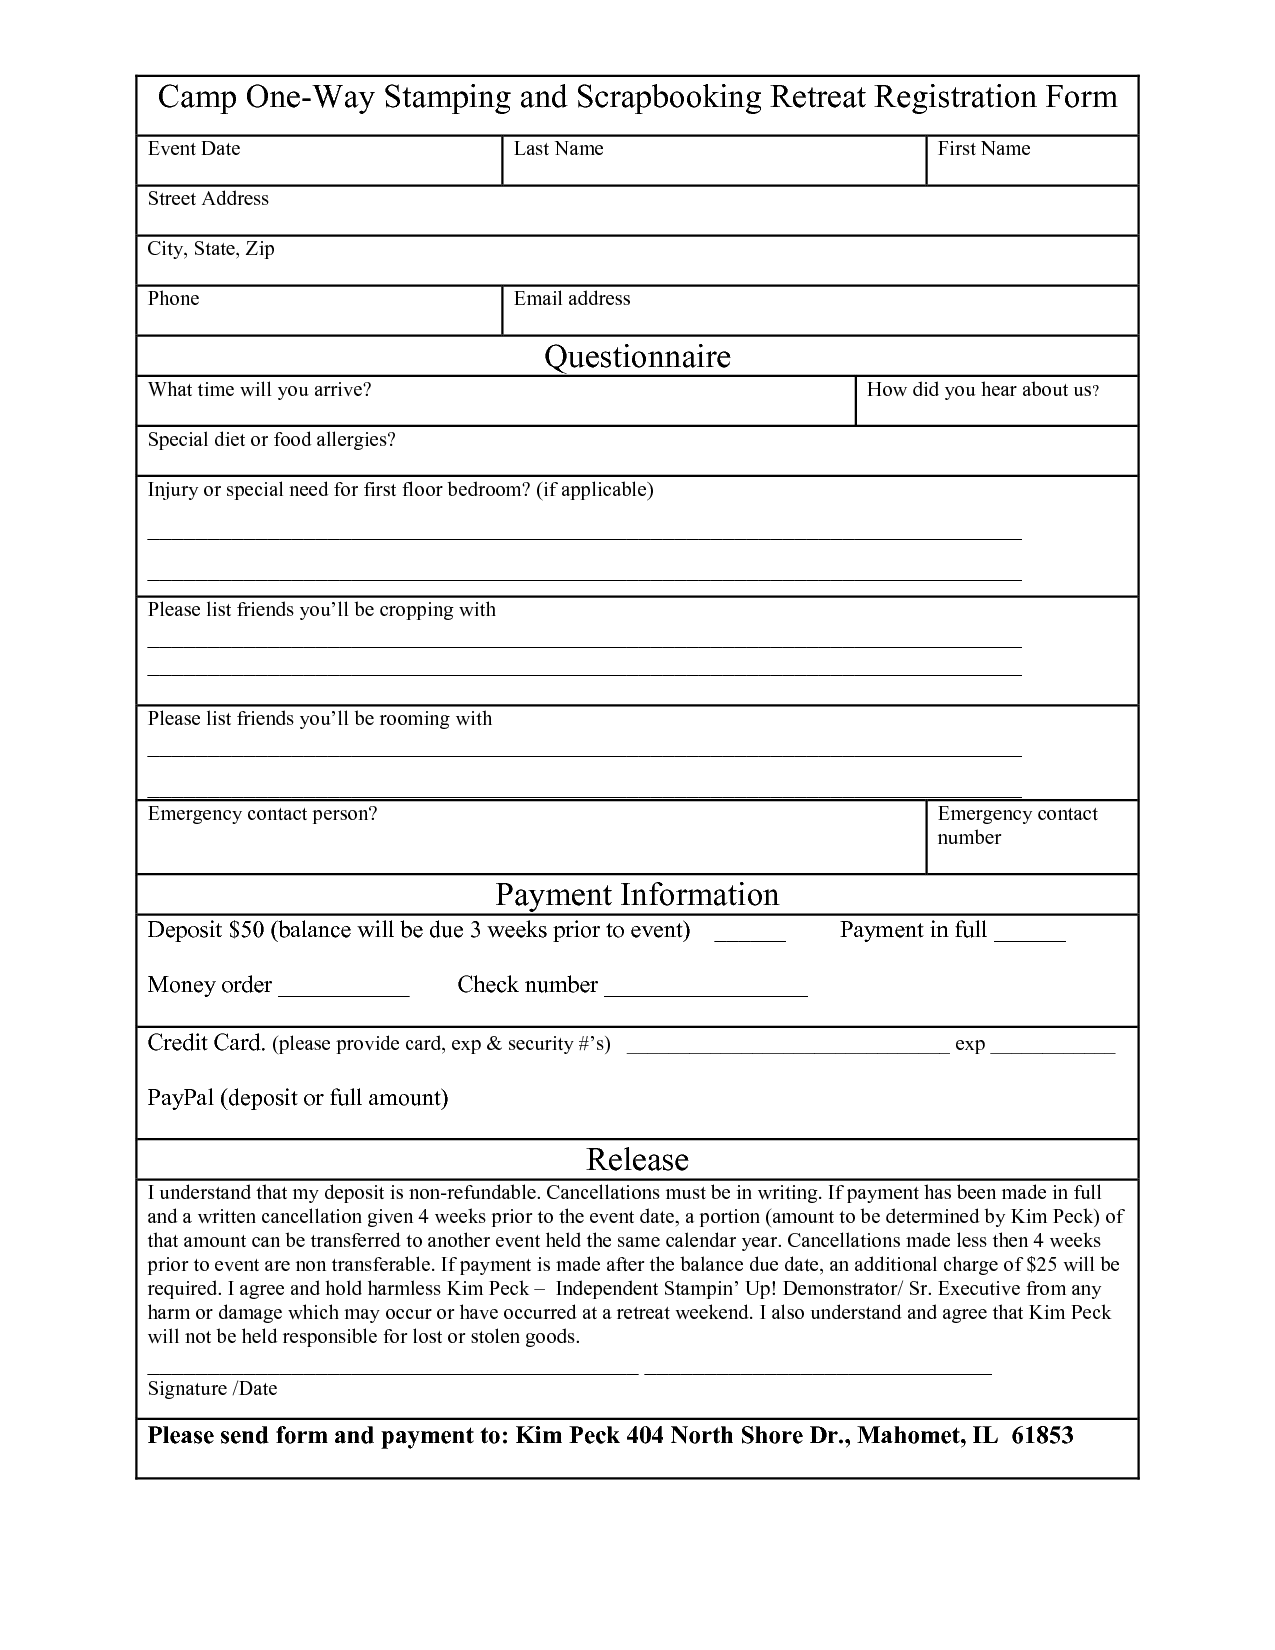 Application Form Template Free 1 – cool green jobs